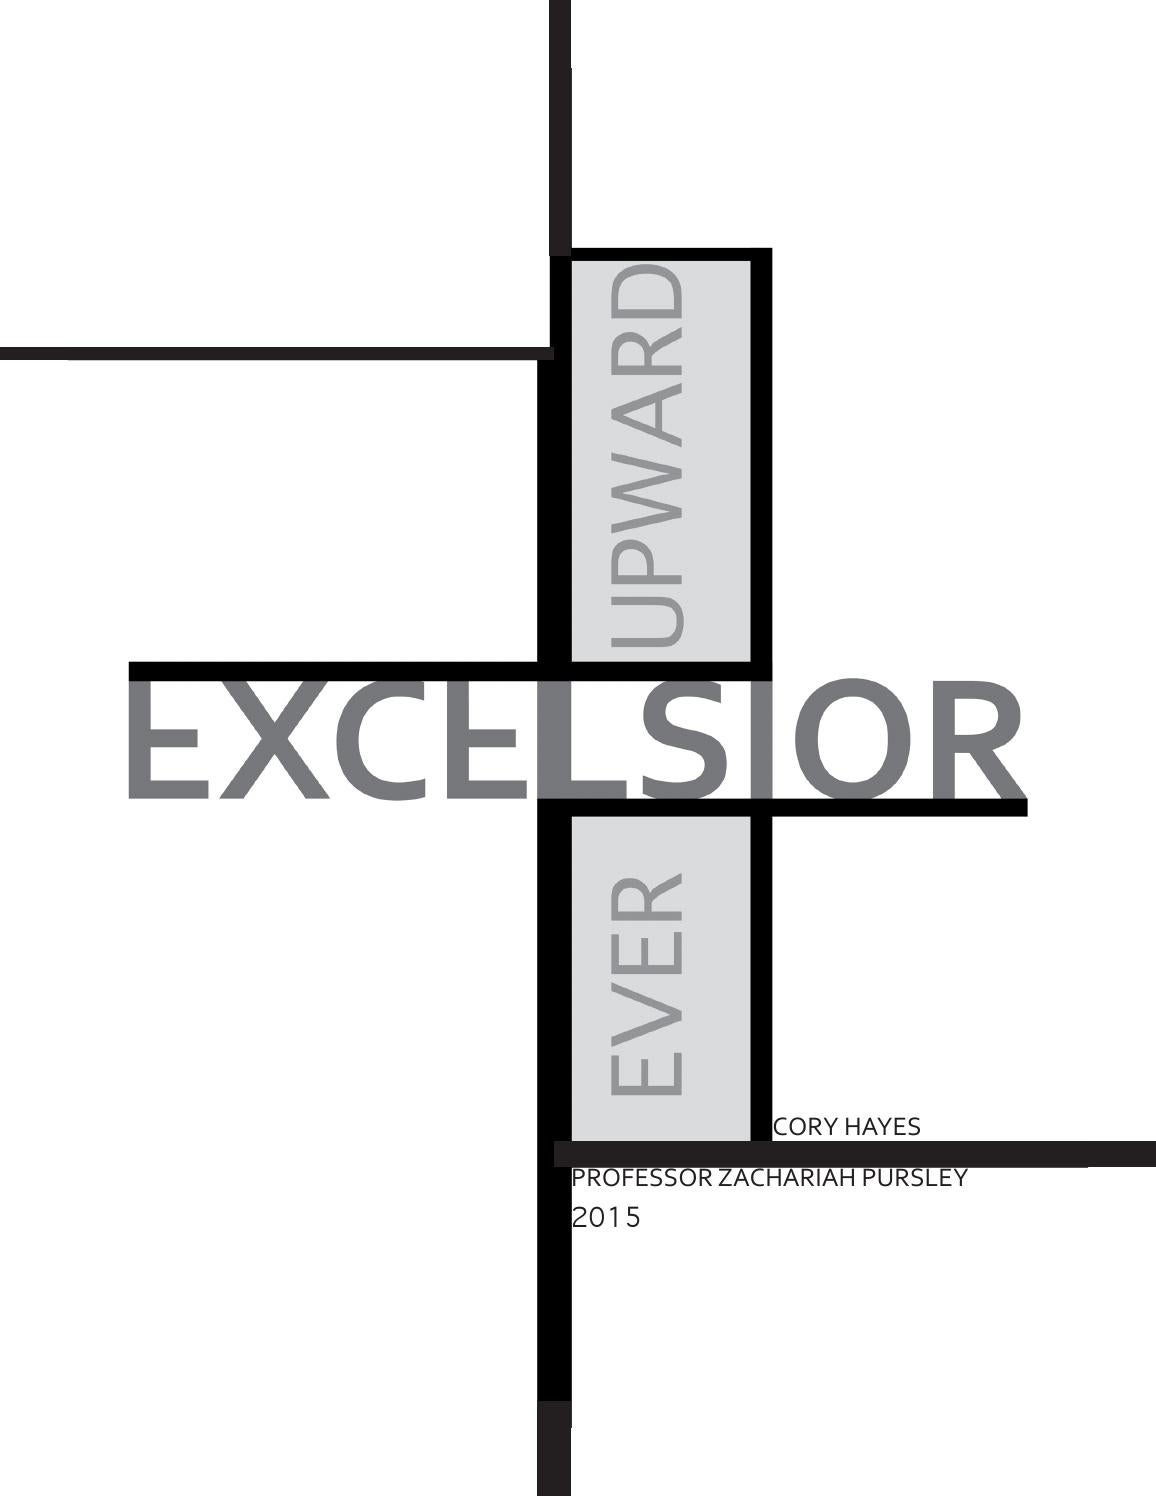 Excelsior : A Thesis on Mixed-Use Skyscrapers by Cory Hayes